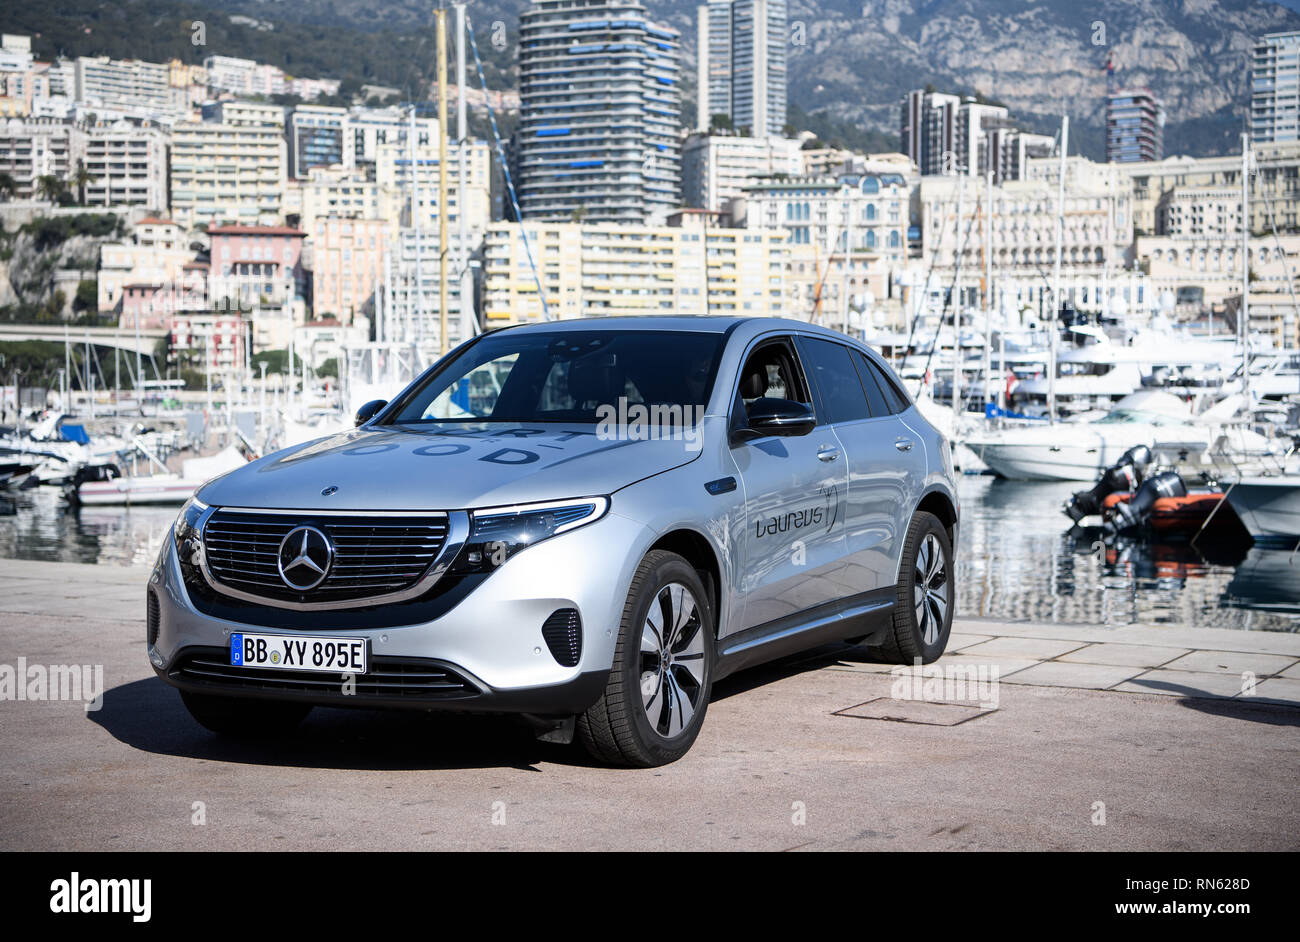 Mercedes Km Monaco 17th Feb 2019 Mercedes Benz Eqc 400 4matic Combined